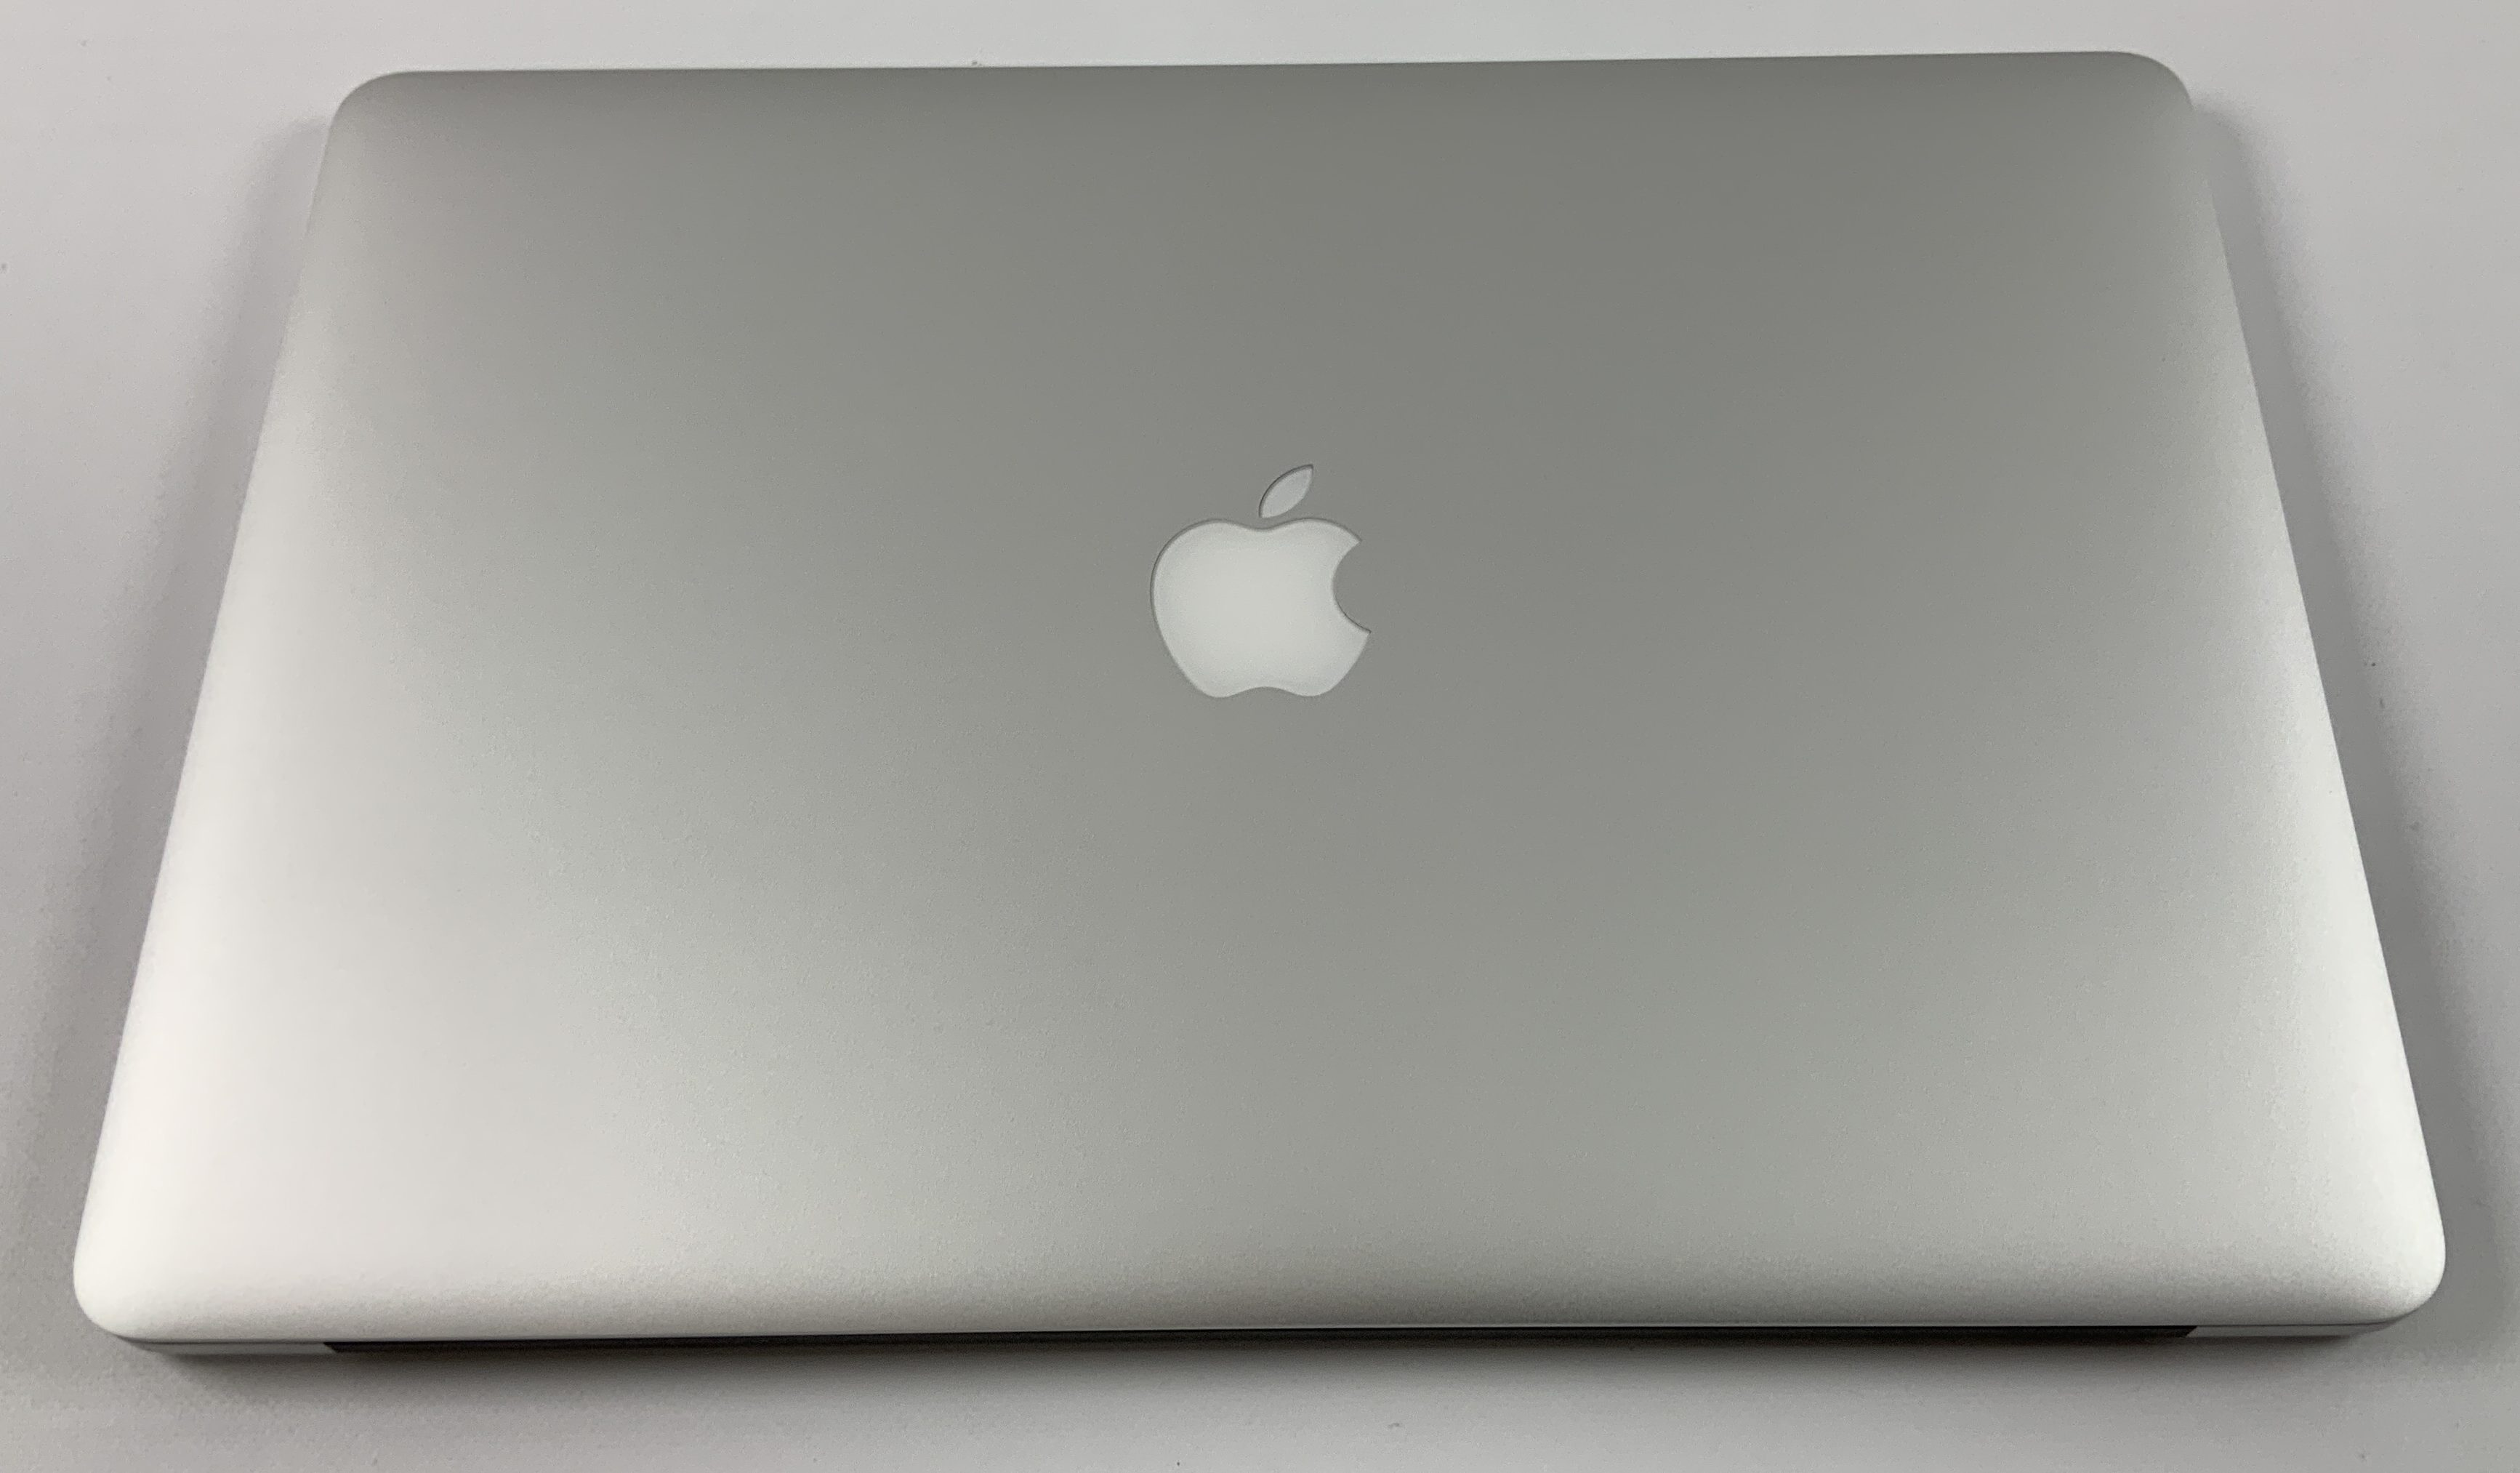 "MacBook Pro Retina 15"" Mid 2015 (Intel Quad-Core i7 2.2 GHz 16 GB RAM 256 GB SSD), Intel Quad-Core i7 2.2 GHz, 16 GB RAM, 256 GB SSD, immagine 2"